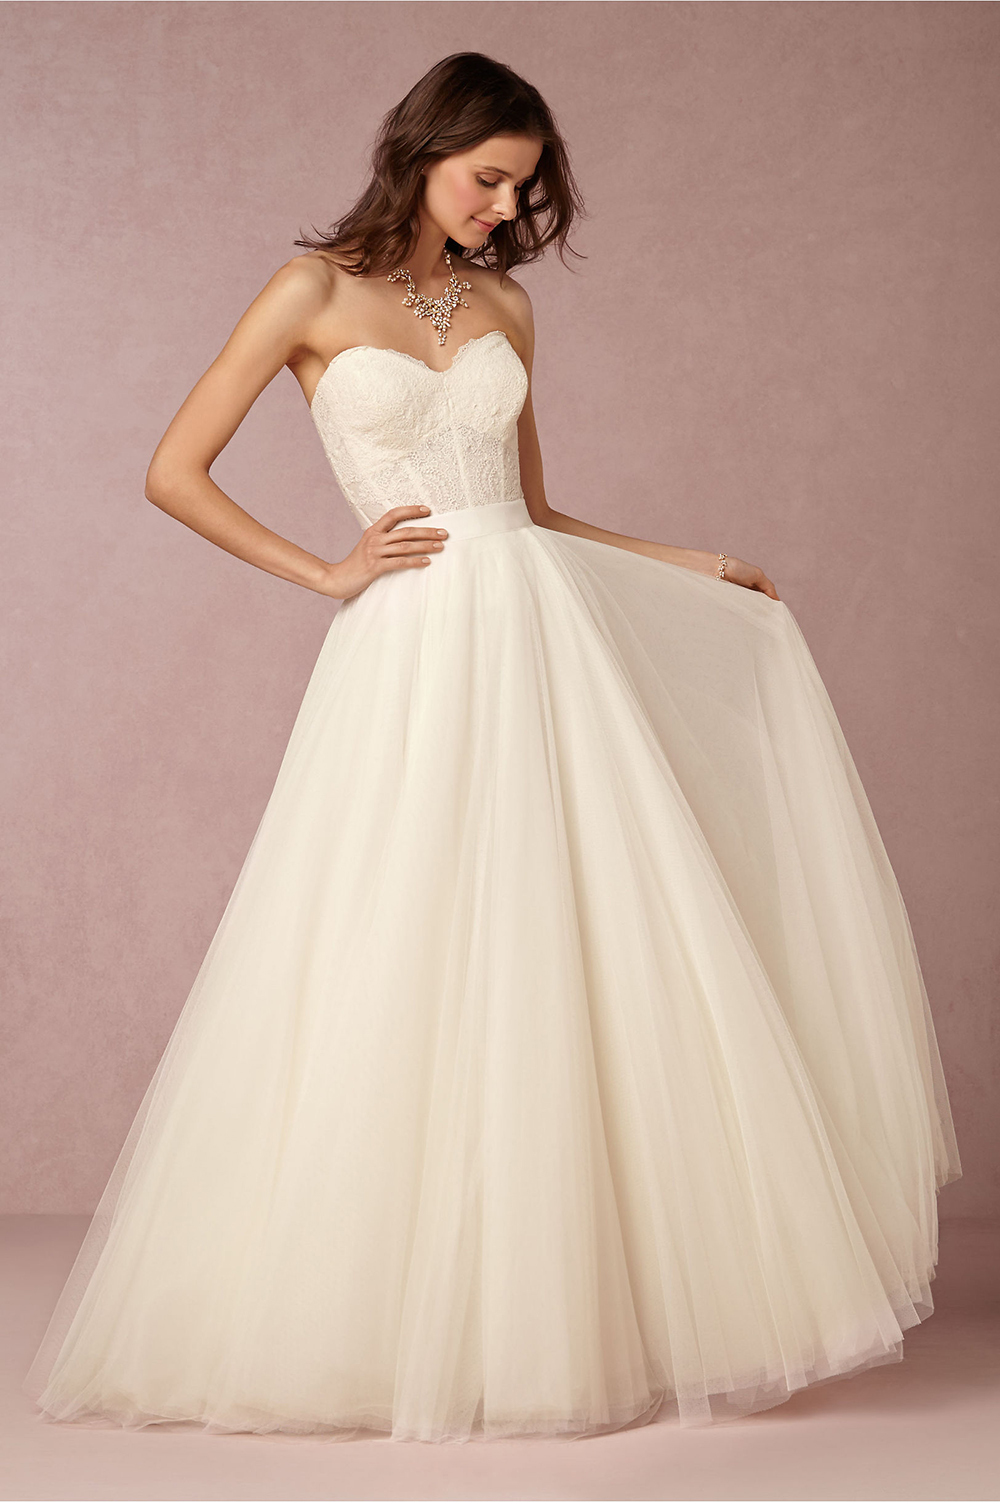 Fancy friday bhldn wedding gowns for Wedding dresses with a corset